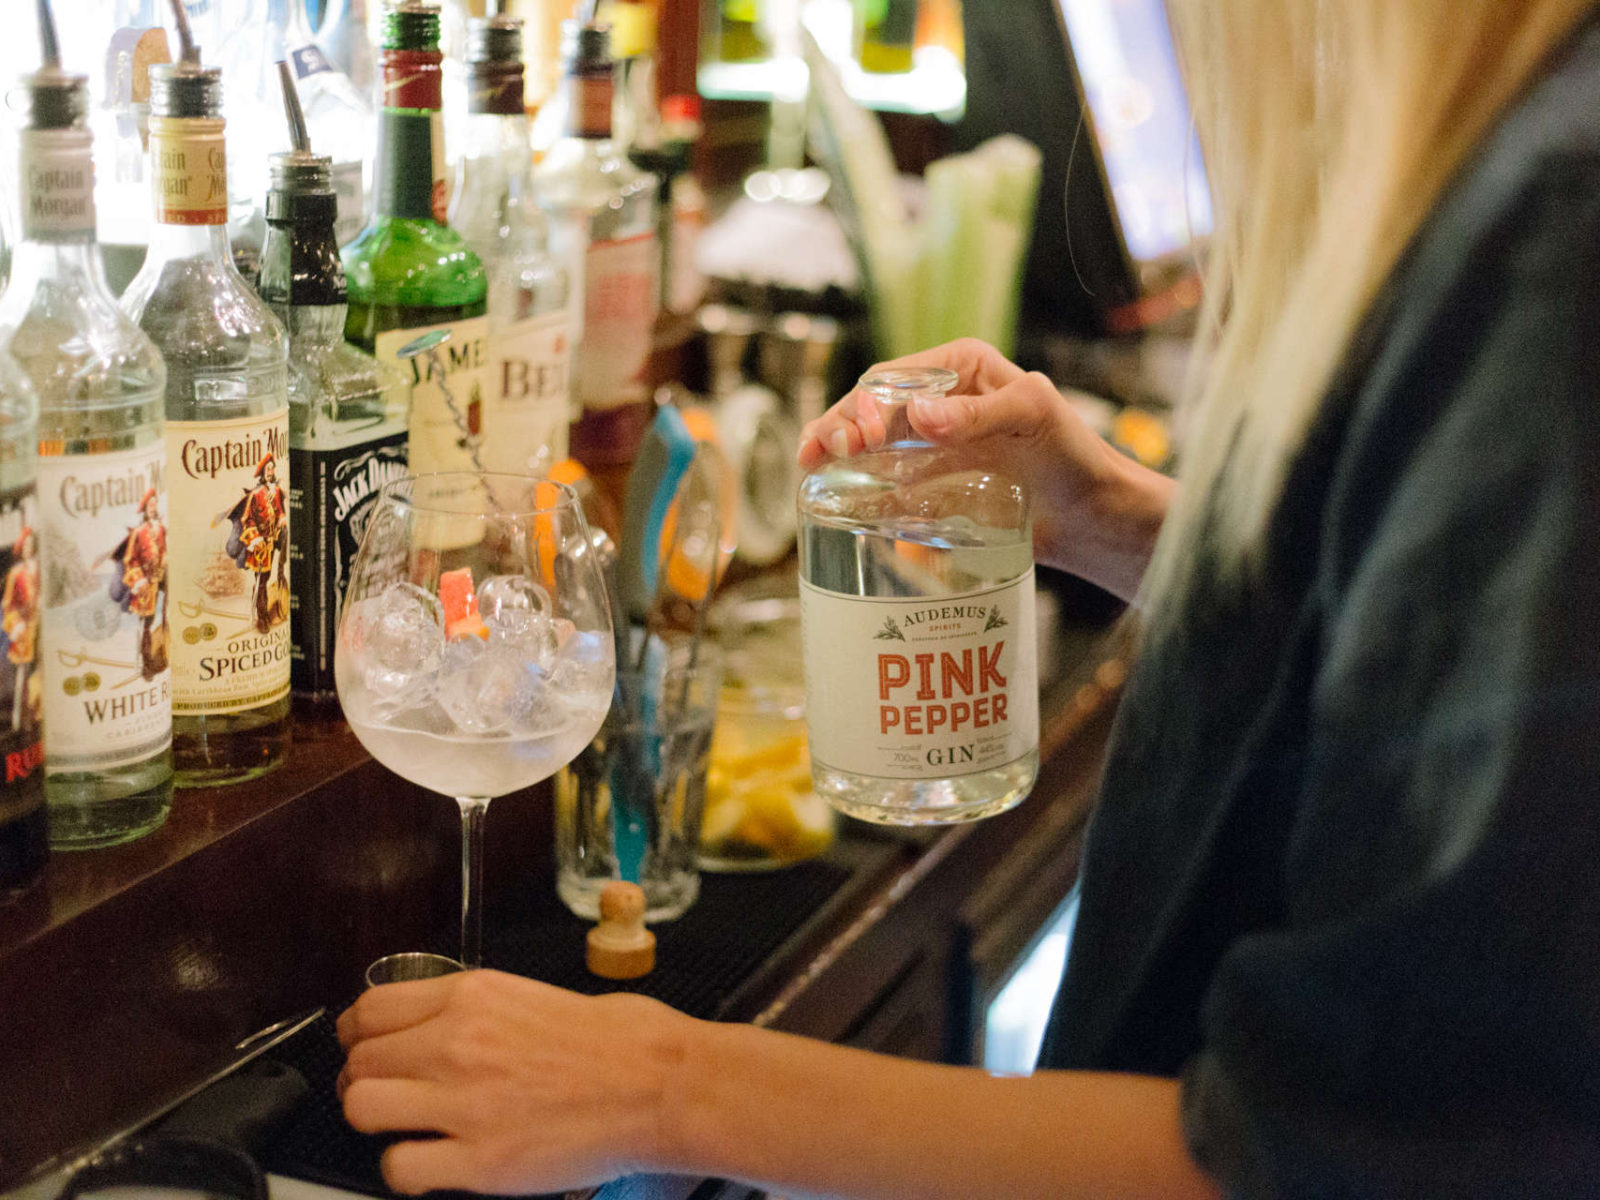 We like good gin cocktails. How about you?